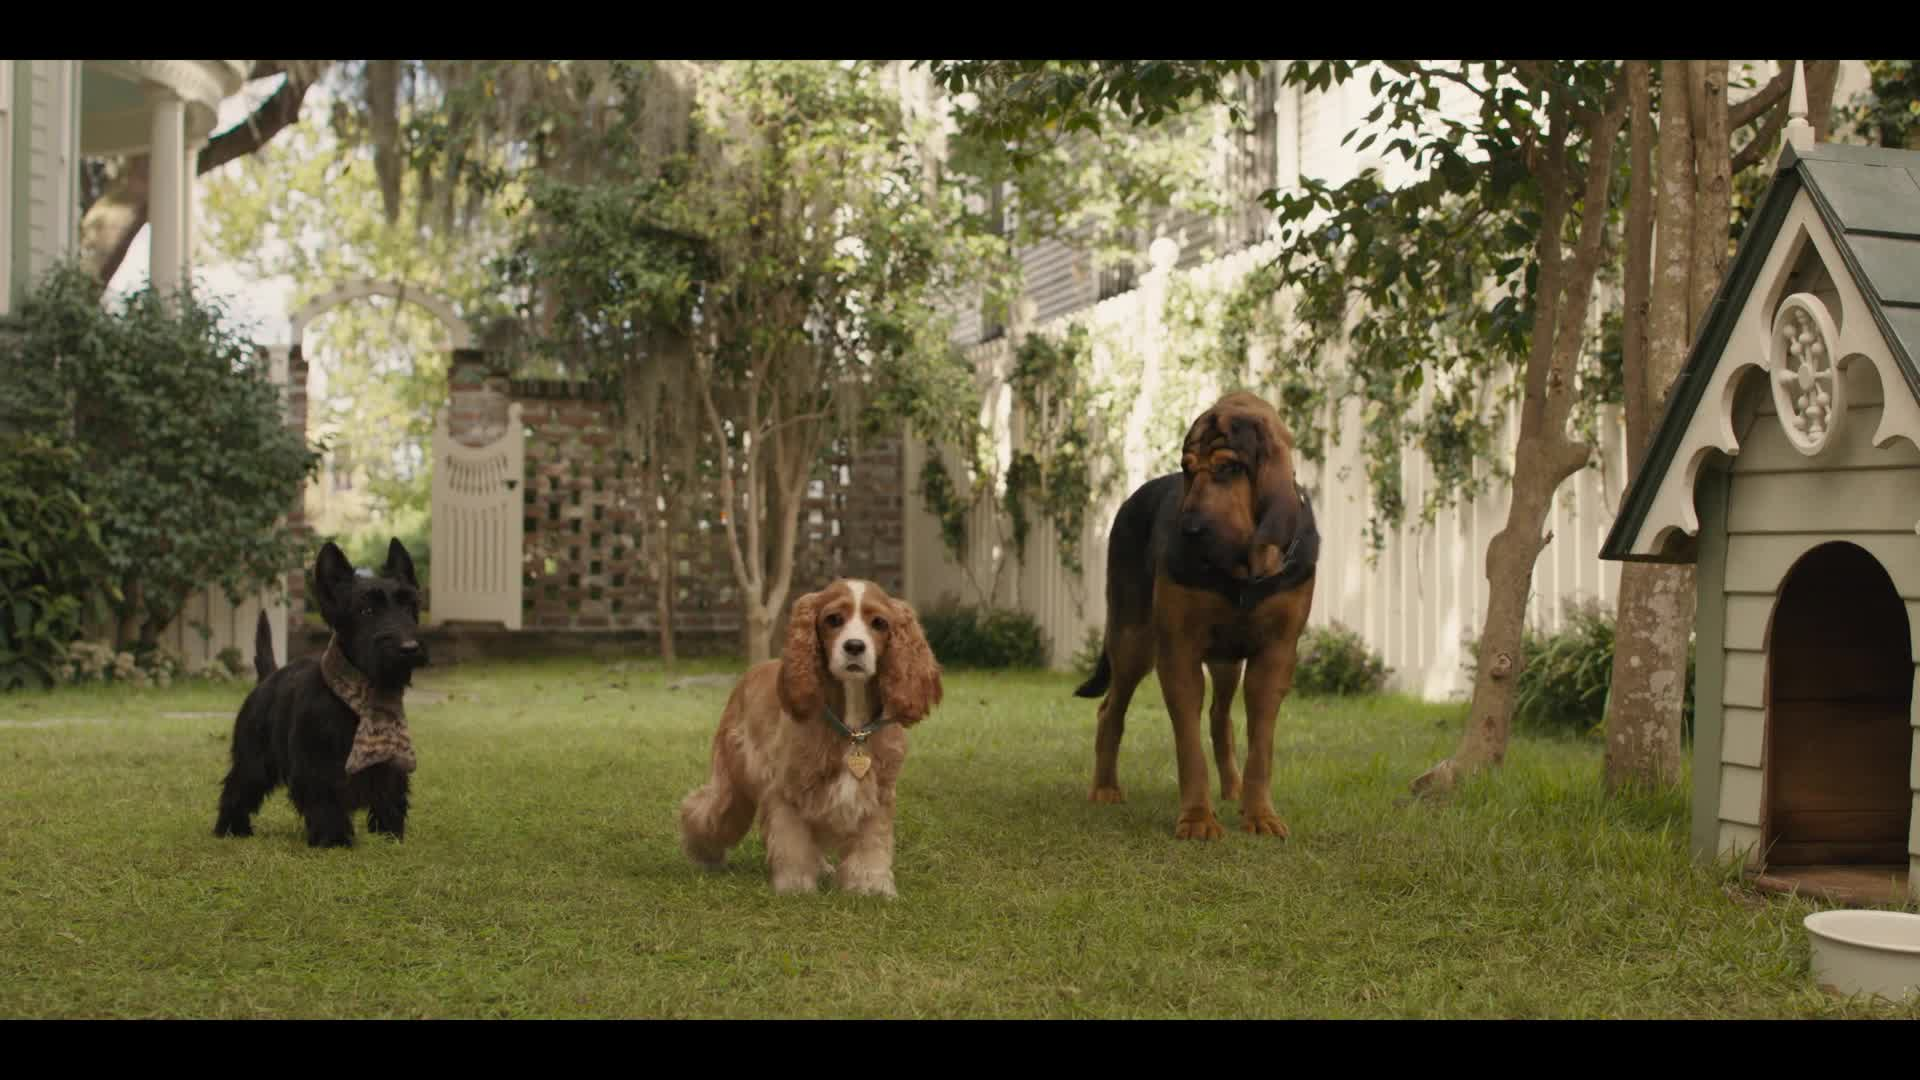 Lady and the Tramp - Movie Clips 1-2 [HD] screen capture